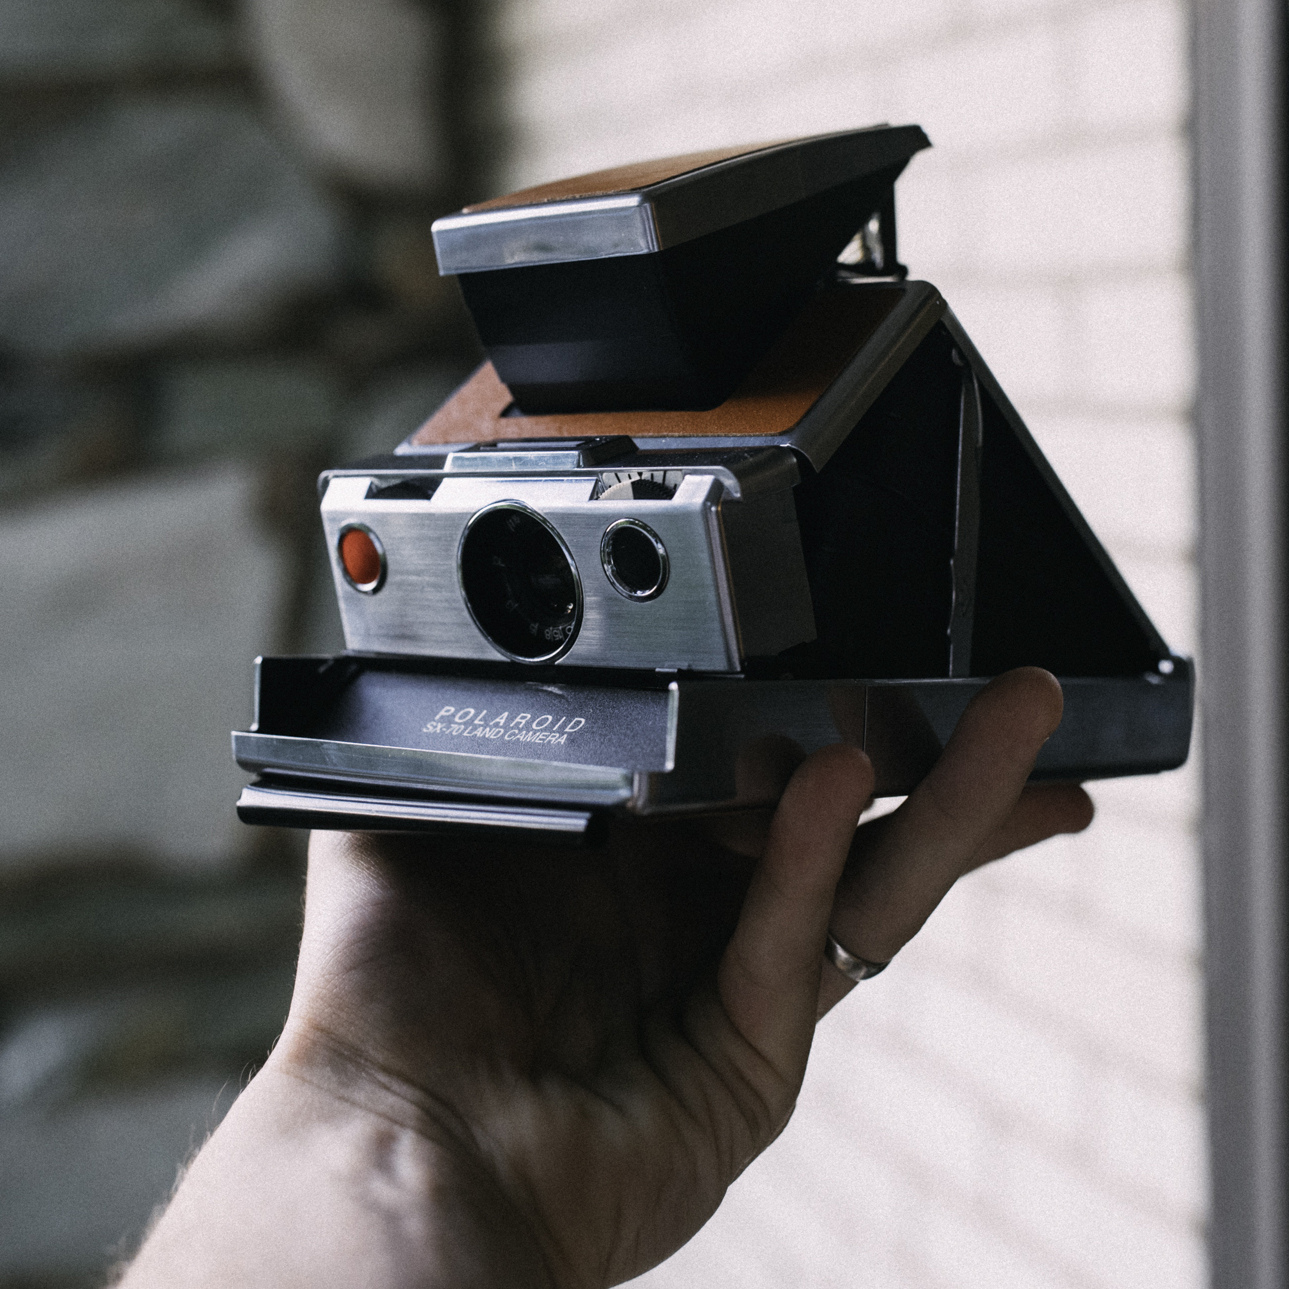 The Polaroid SX-70. Isn't she beautiful? It's amazing all of the mechanical intricacies hidden behind that leather.